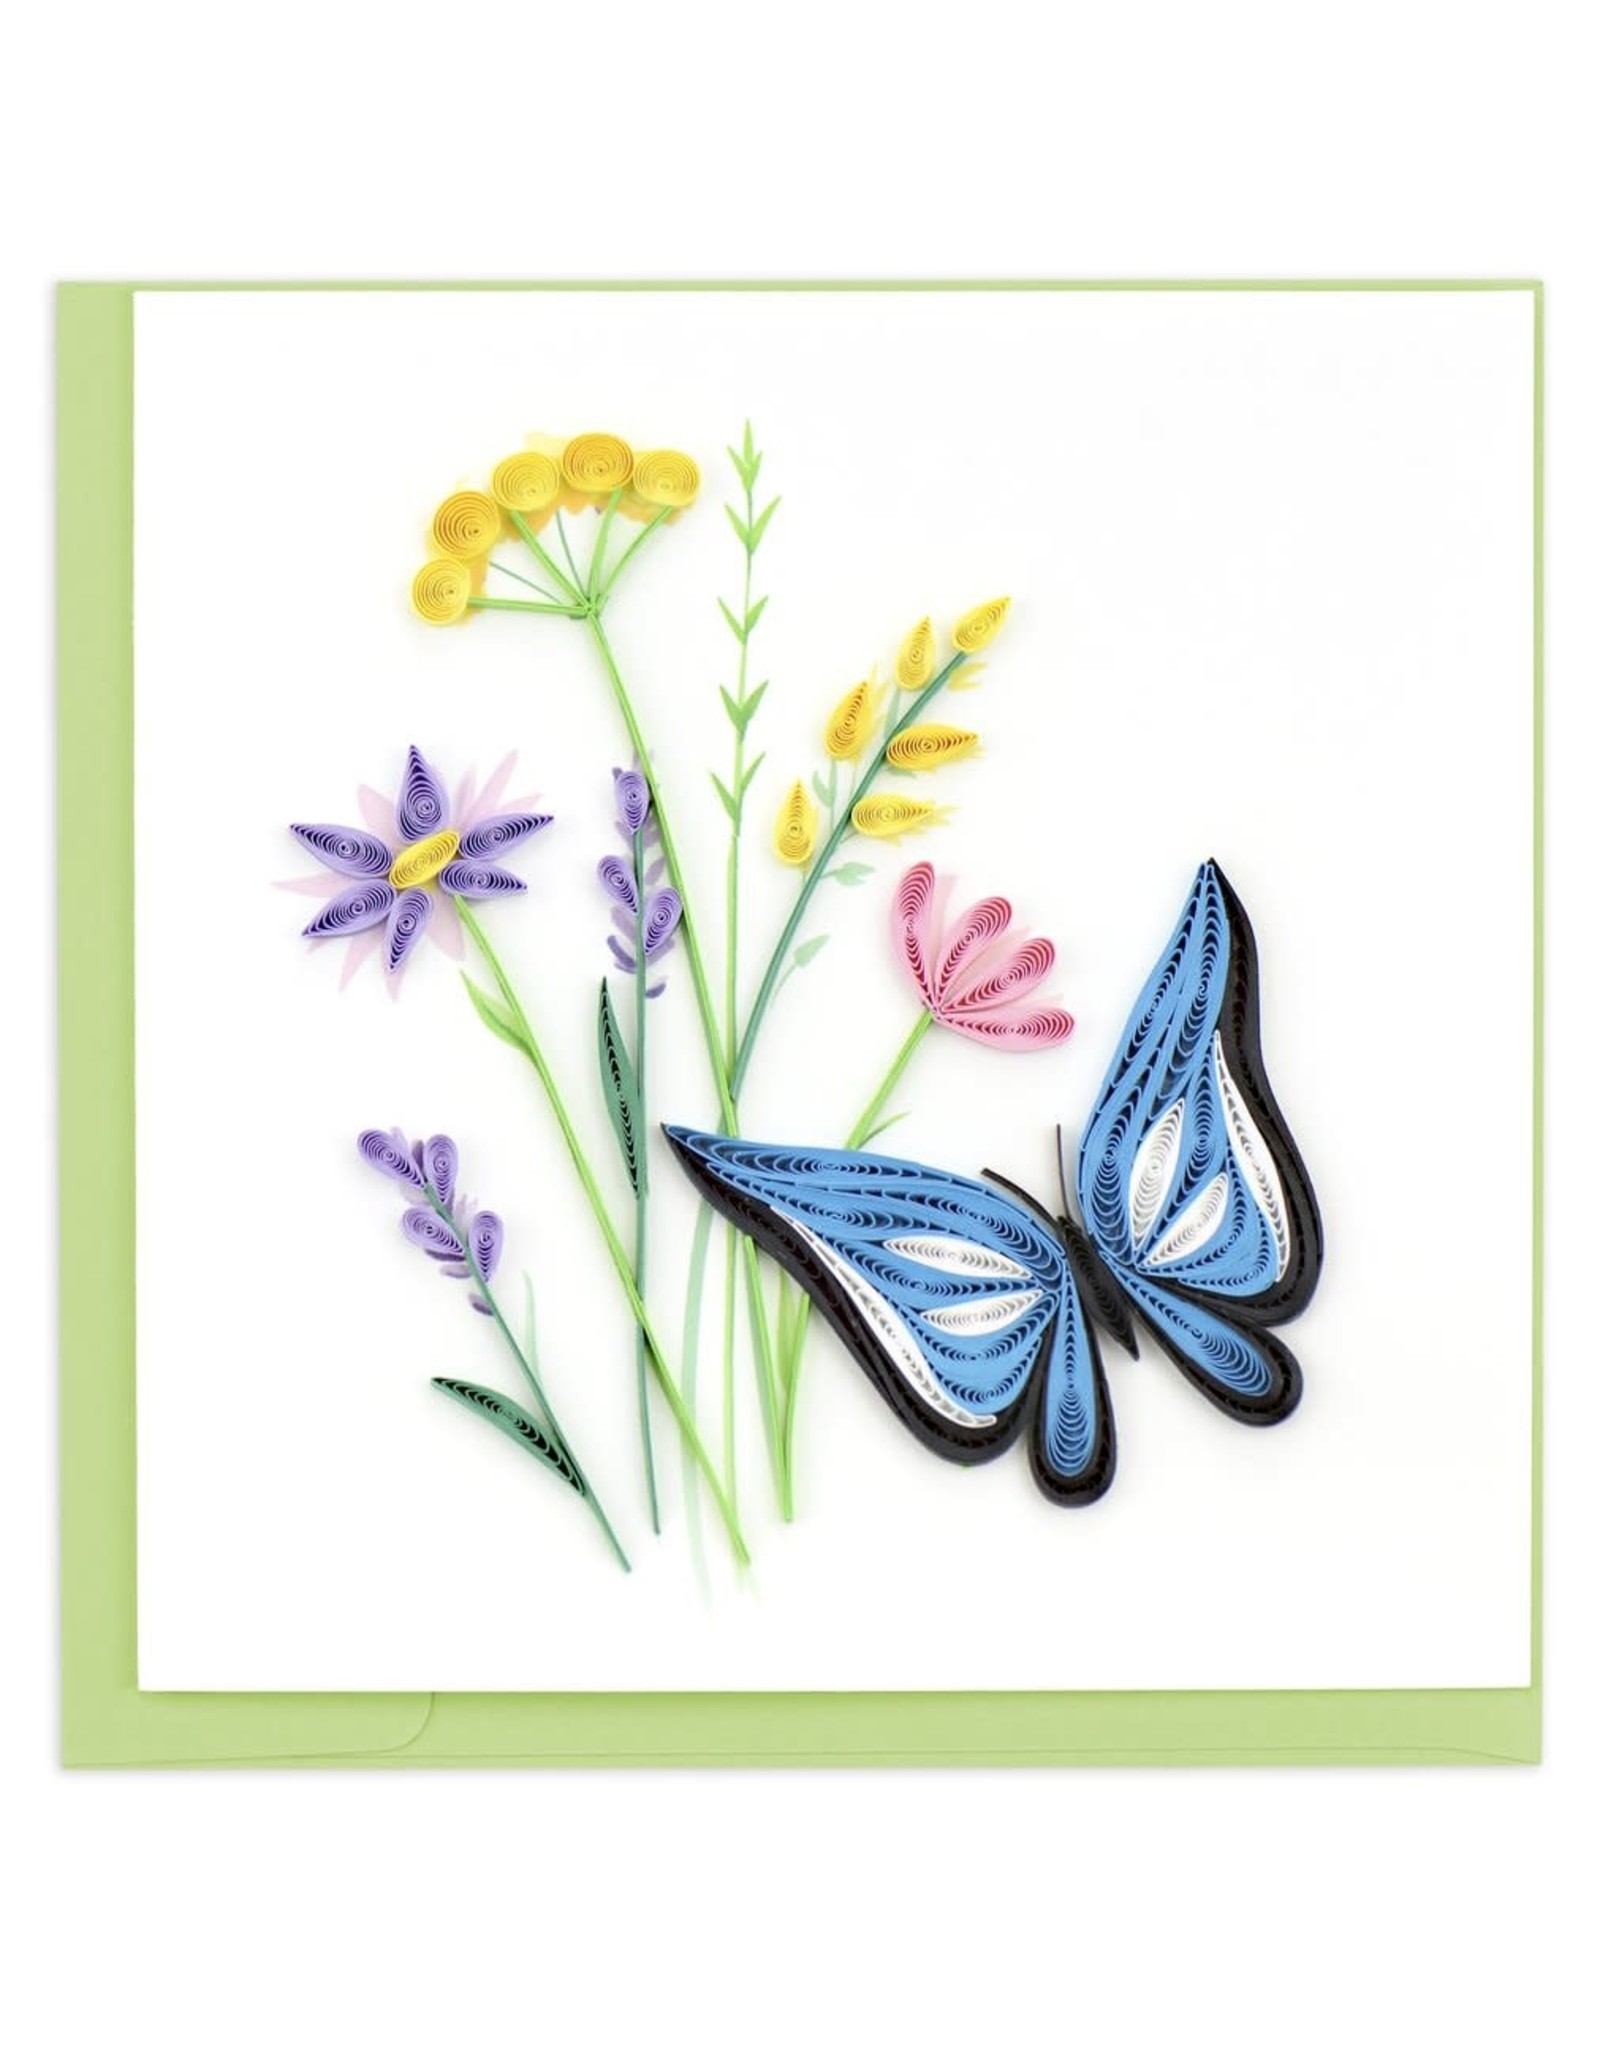 quillingcard Quilled Butterfly & Wildflowers Card, Vietnam